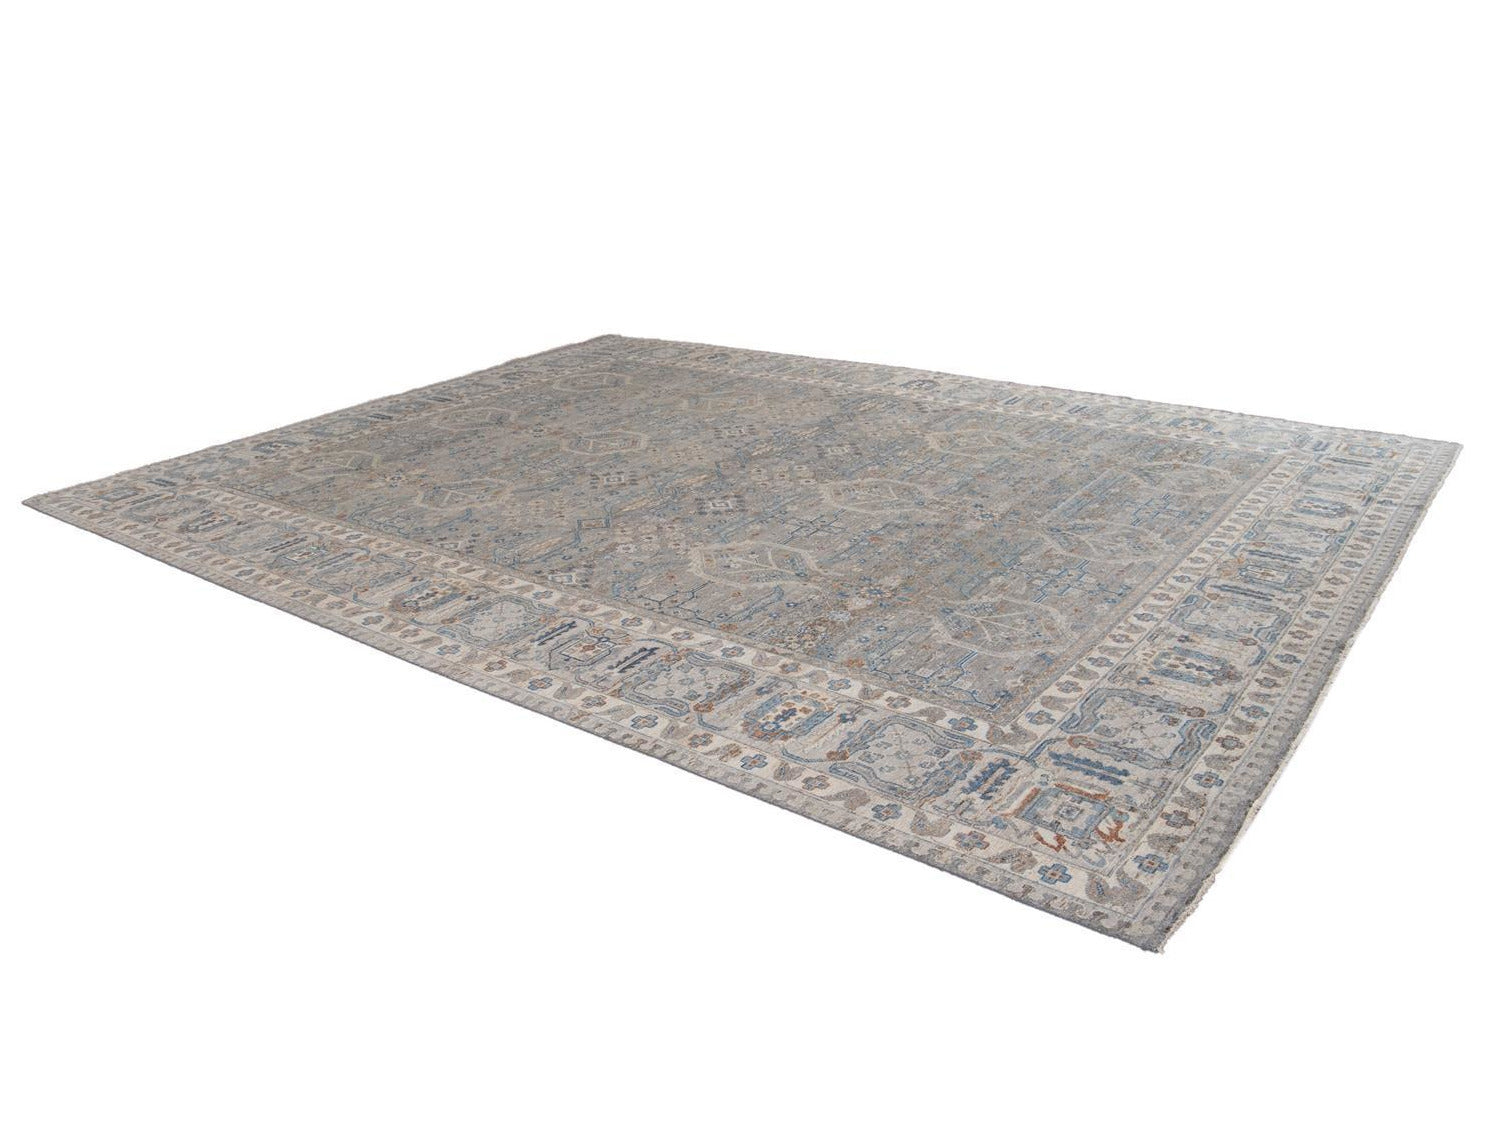 21st Century Contemporary Indian Wool Rug, 9 X 12